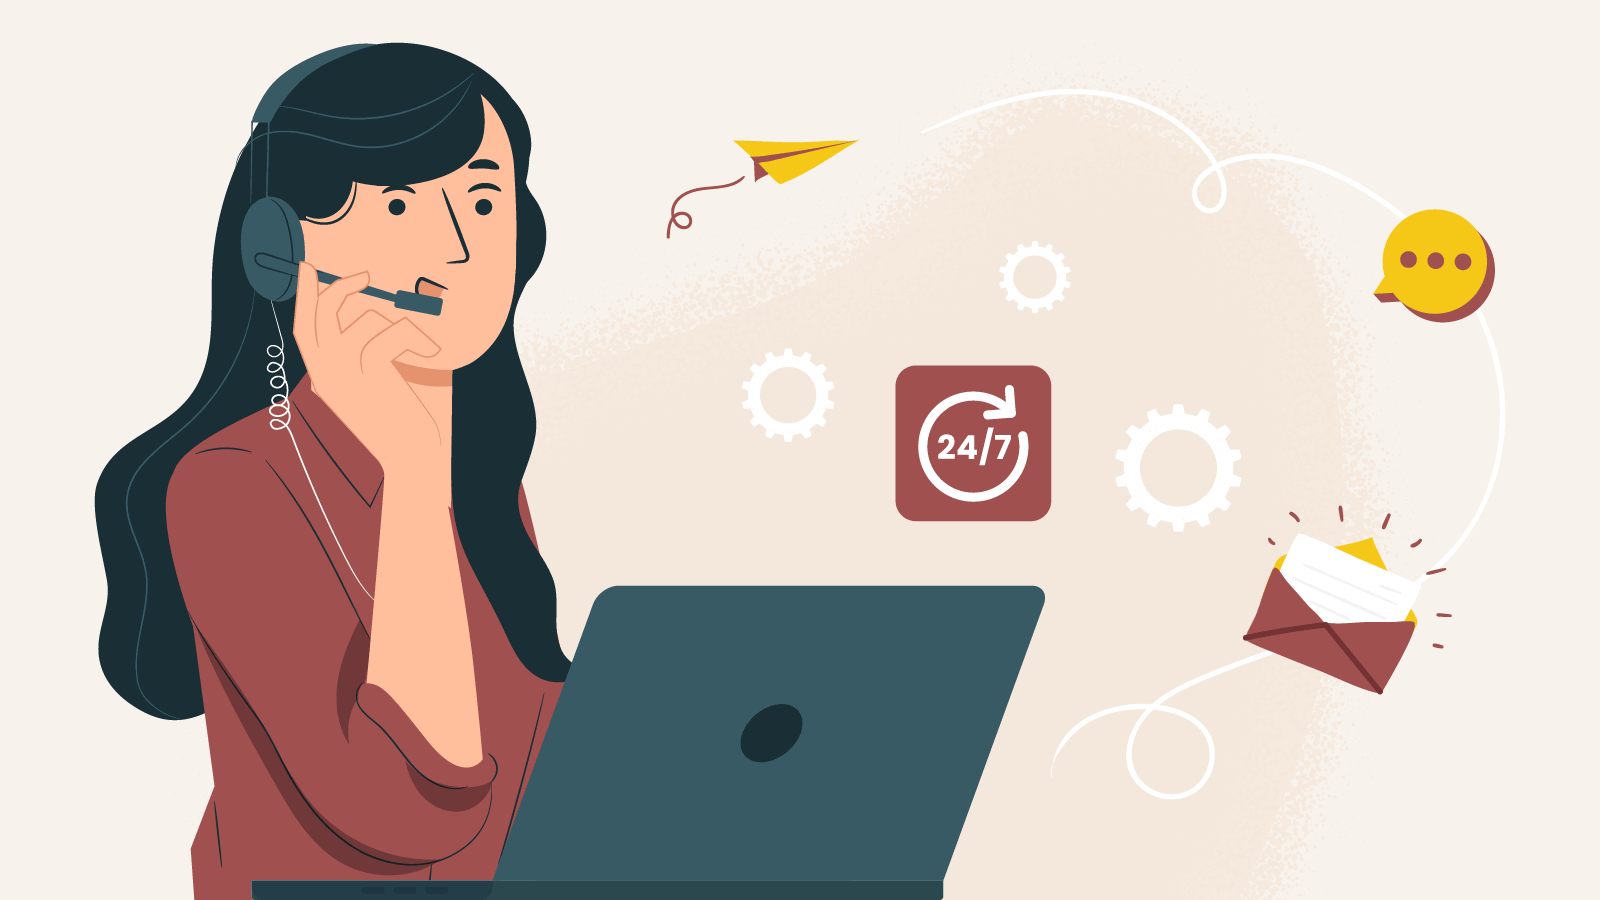 Find out how to reach customer support